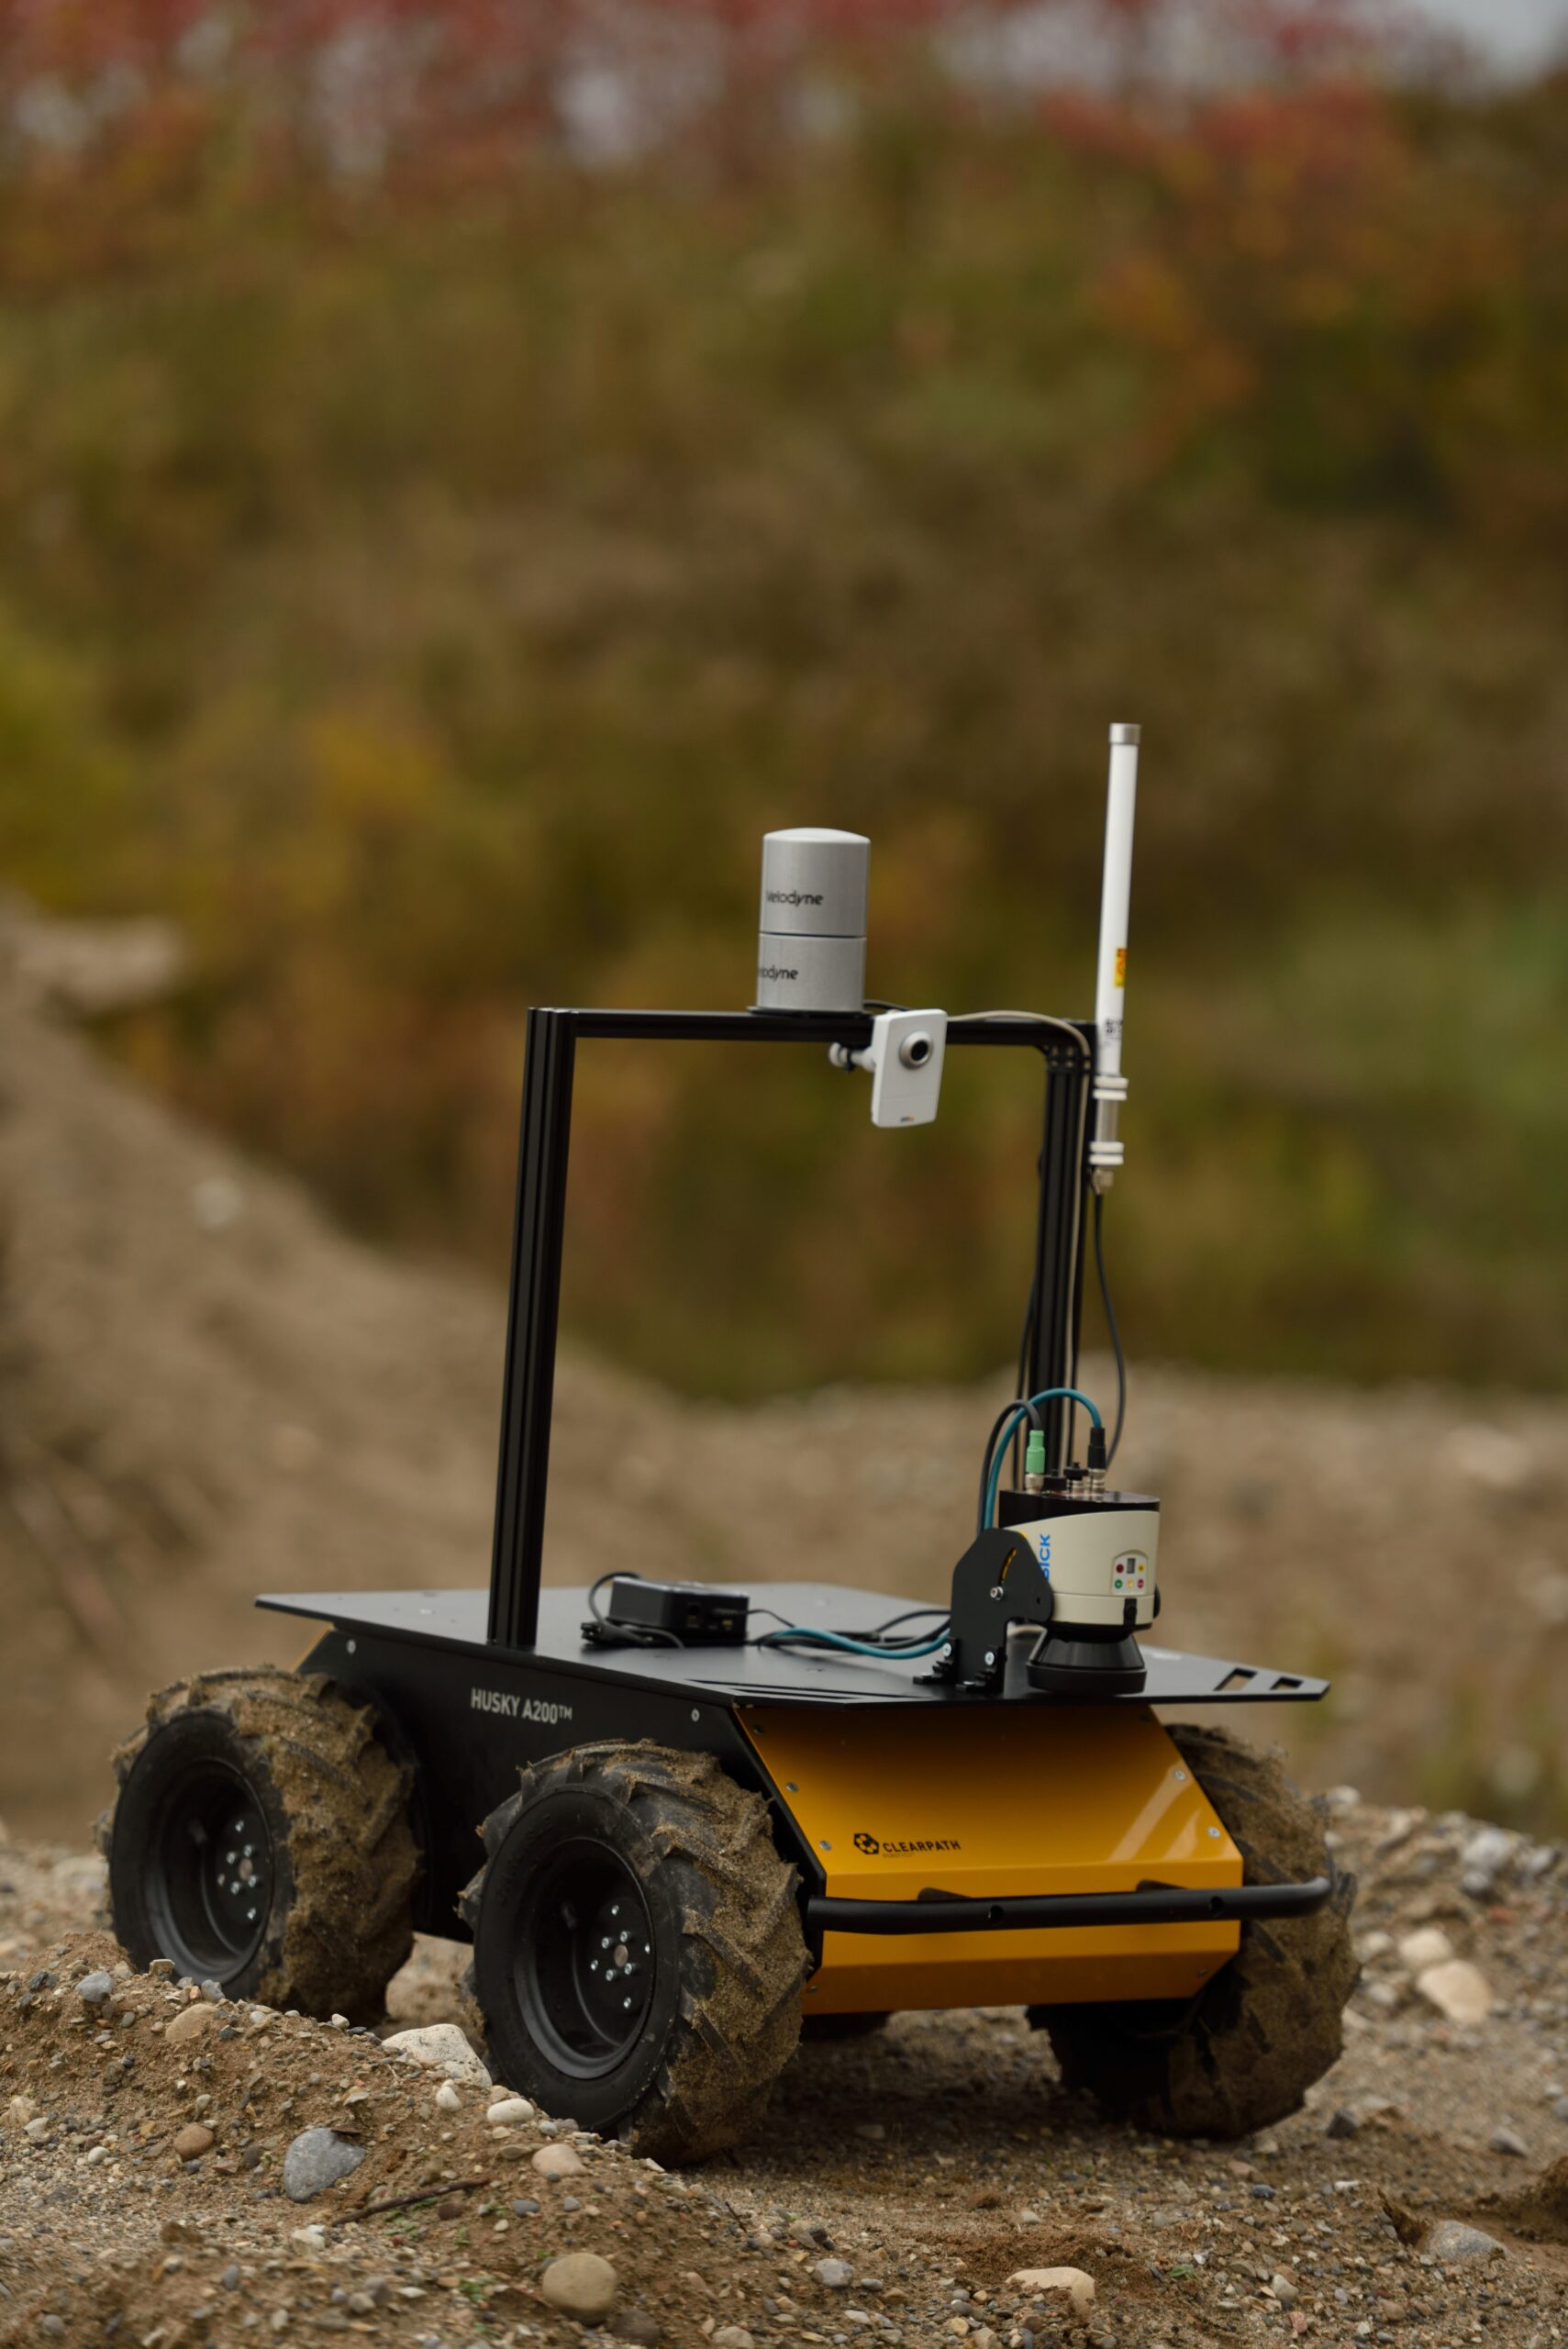 Unmanned ground vehicle for automated harvesting